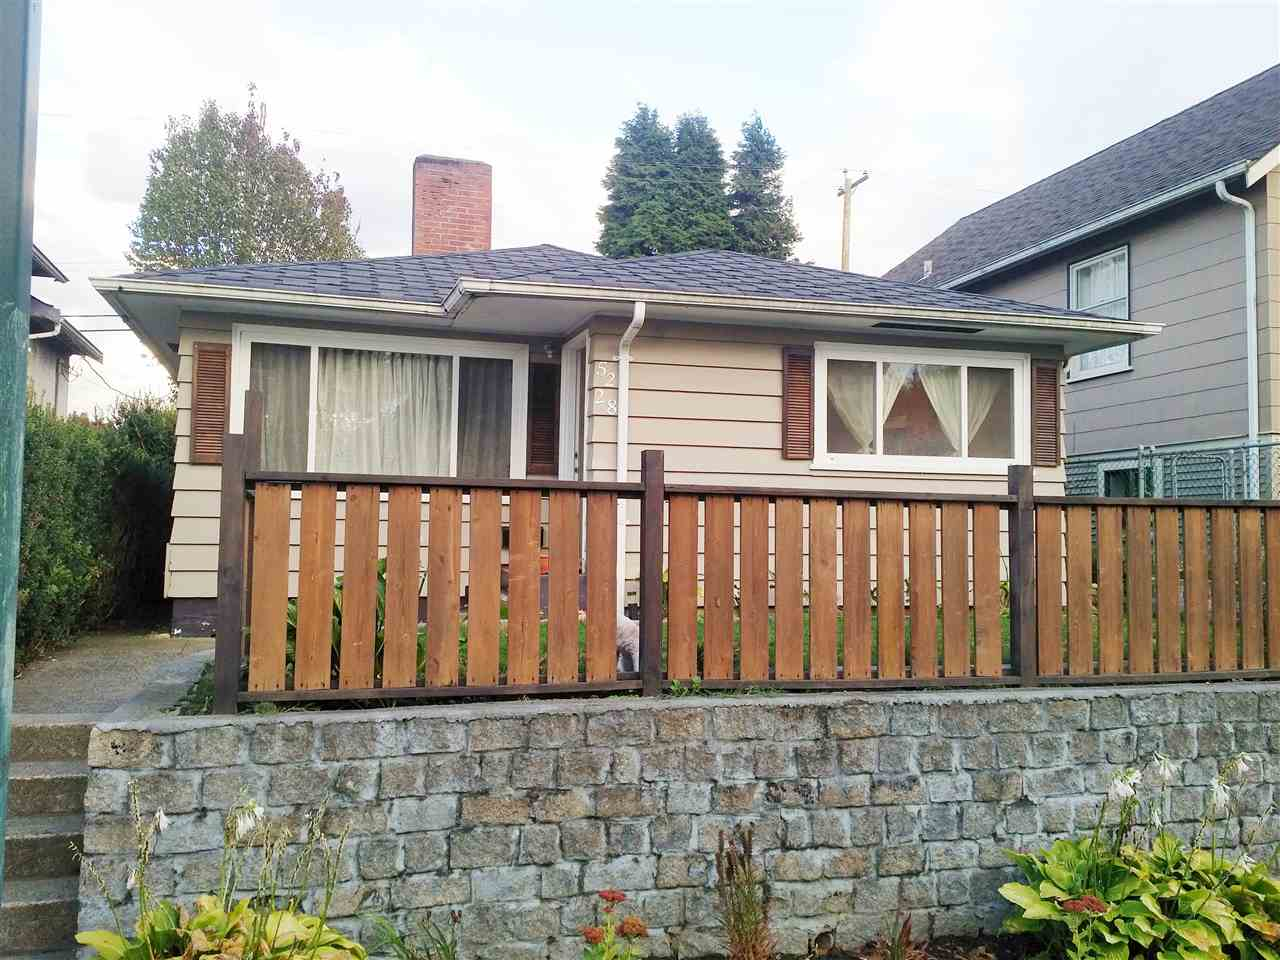 Main Photo: 5228 FRASER Street in Vancouver: Fraser VE House for sale (Vancouver East)  : MLS® # R2109950